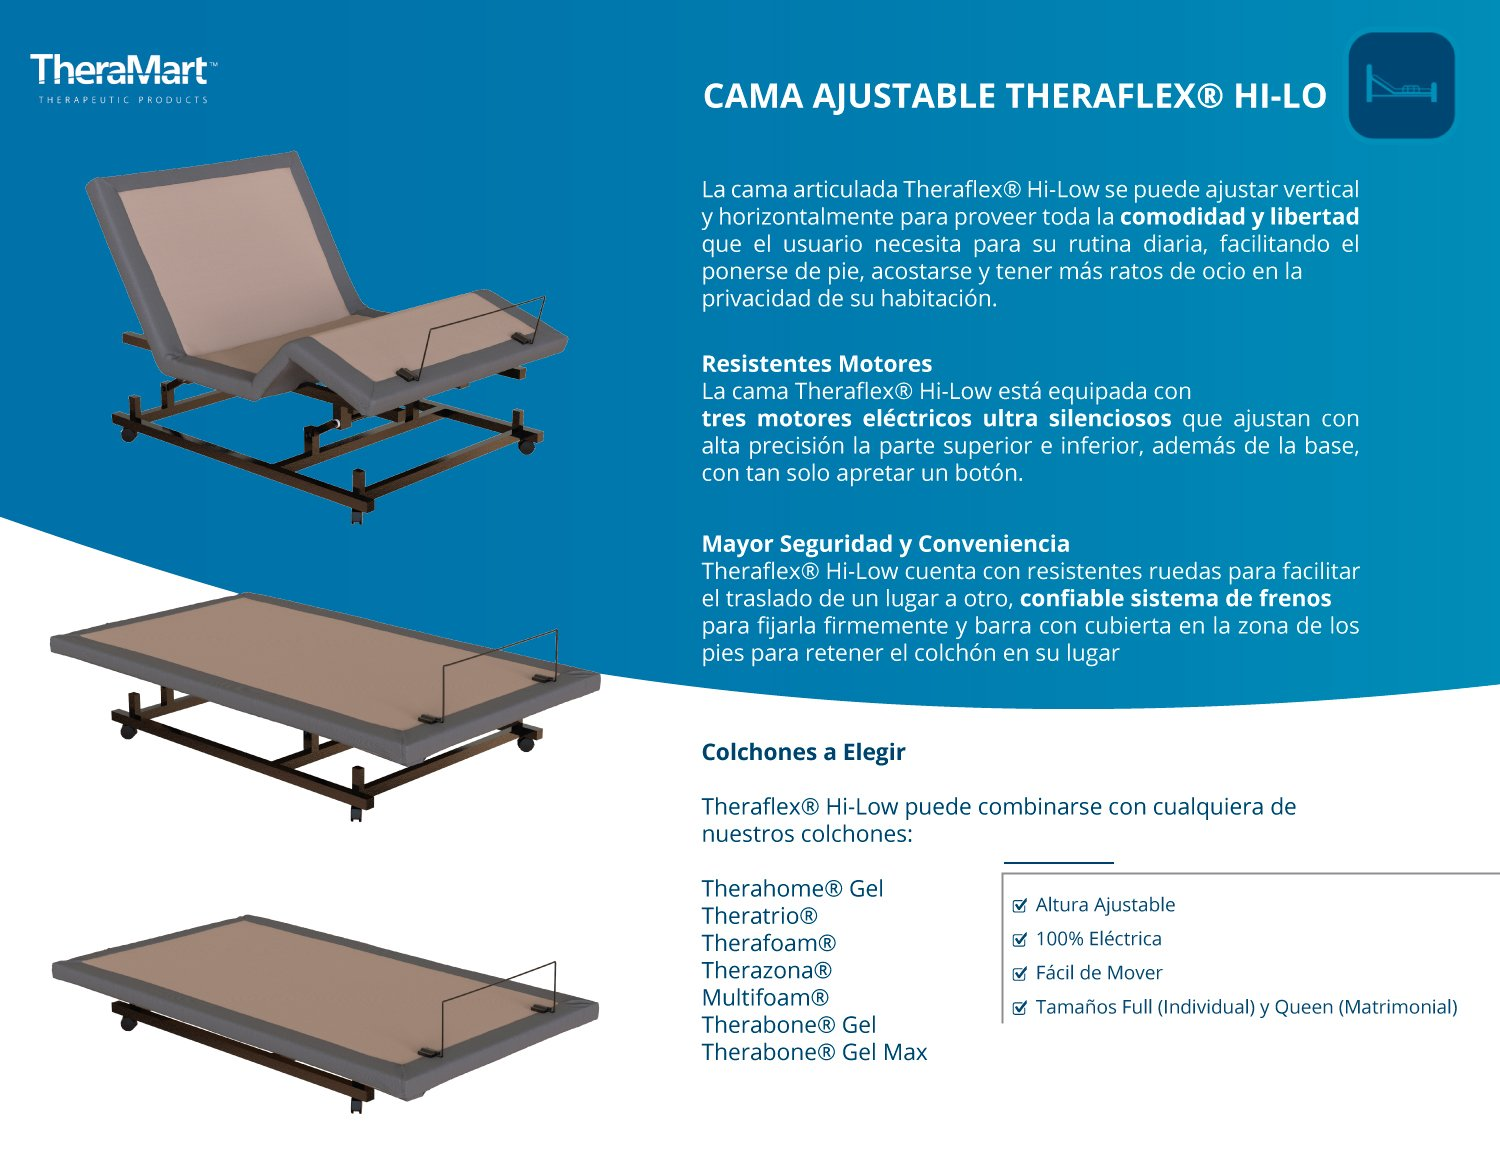 Cama Ajustable Theraflex Hi-Lo